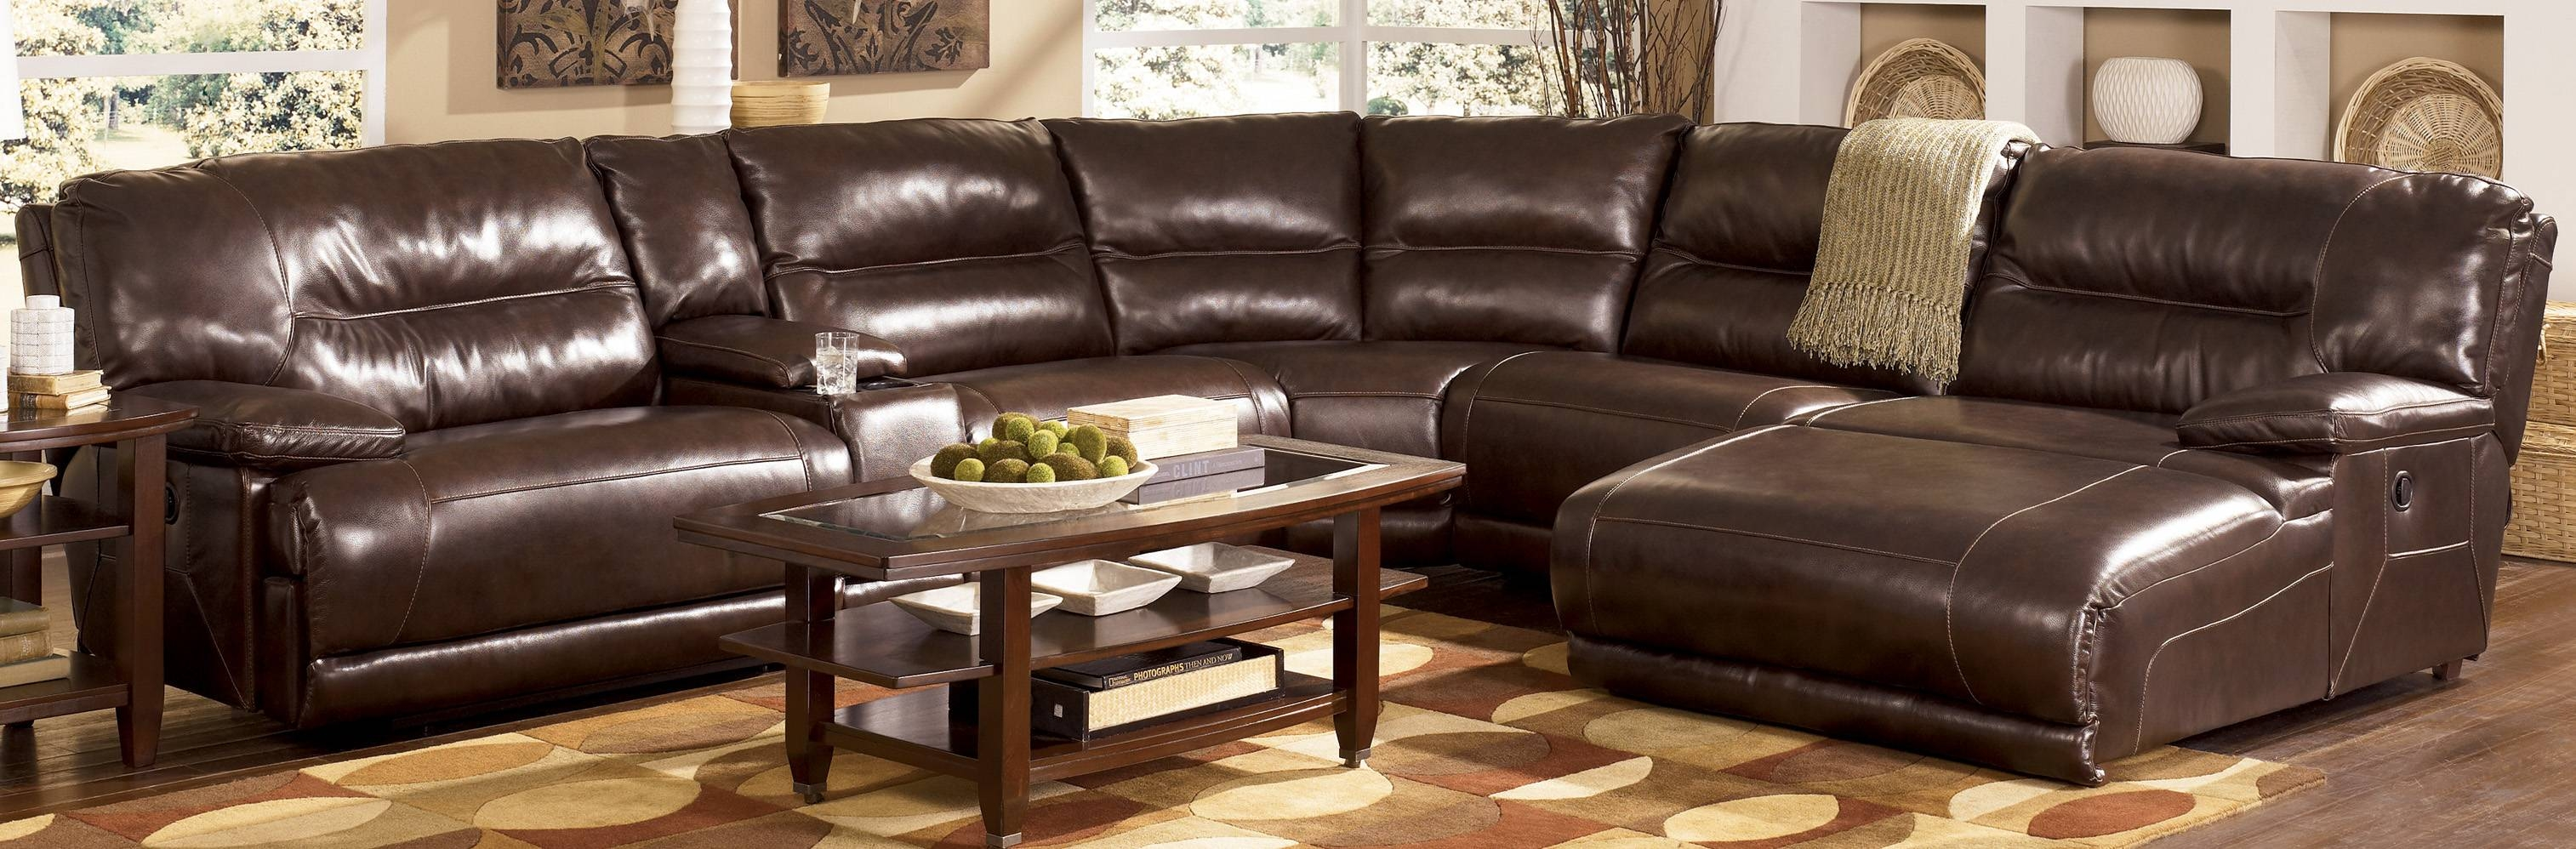 Cleanupflorida - Sectional Sofa Ideas intended for Ashley Faux Leather Sectional Sofas (Image 5 of 15)